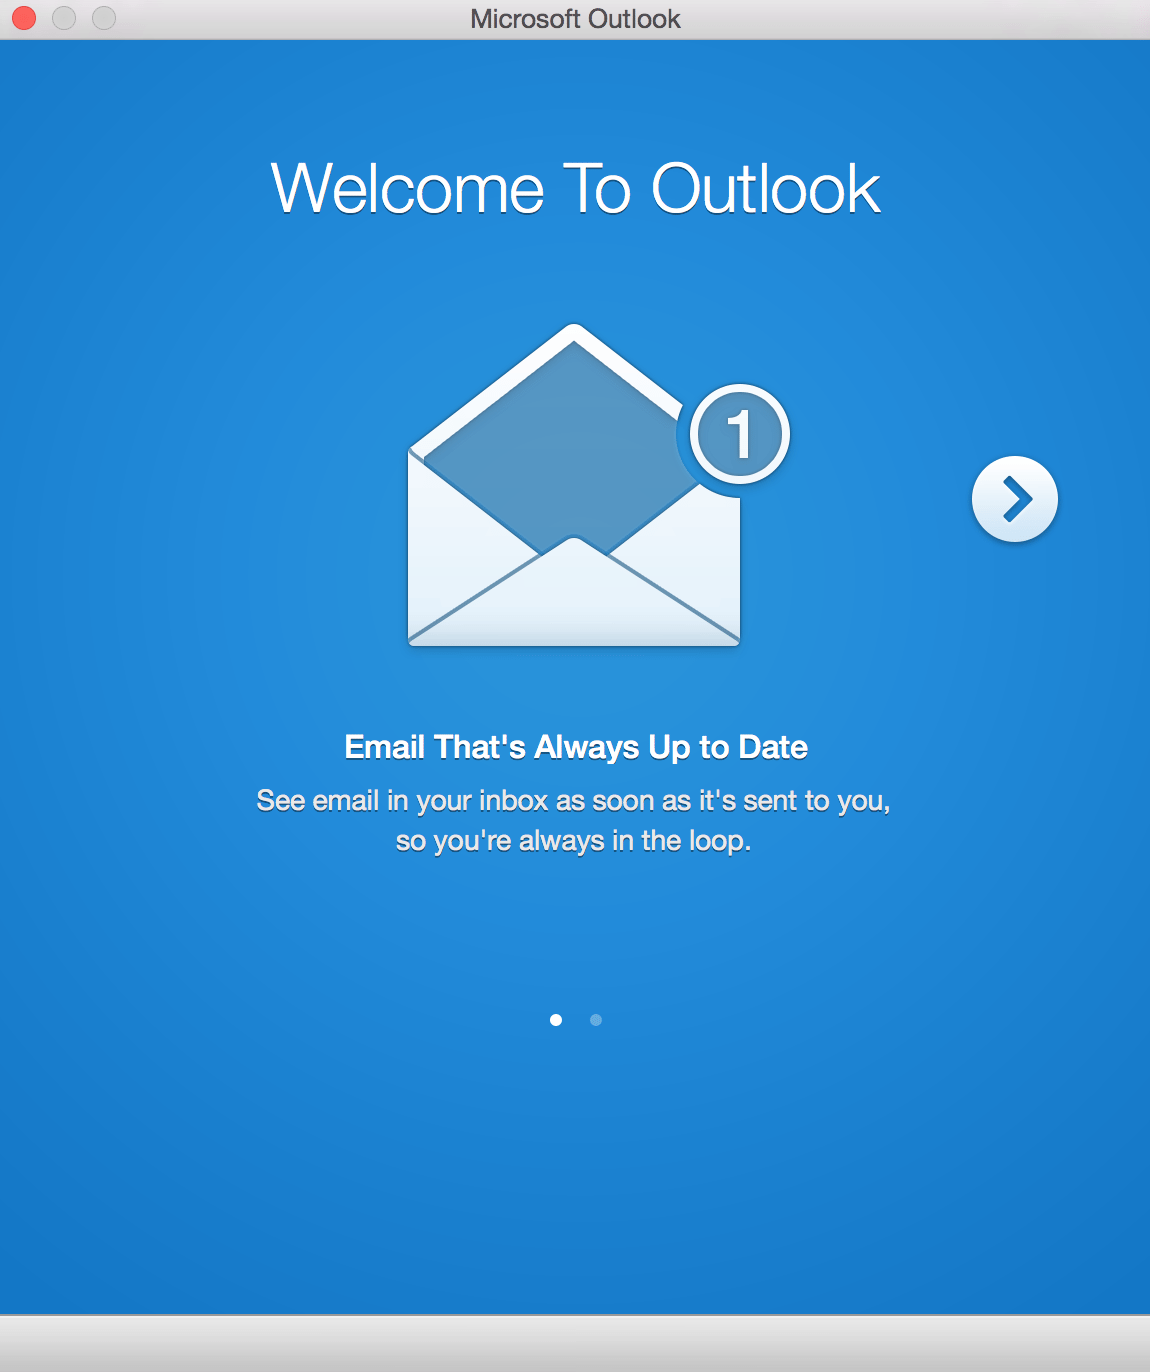 Microsoft Office 2016 for Mac Preview - Outlook Crashes